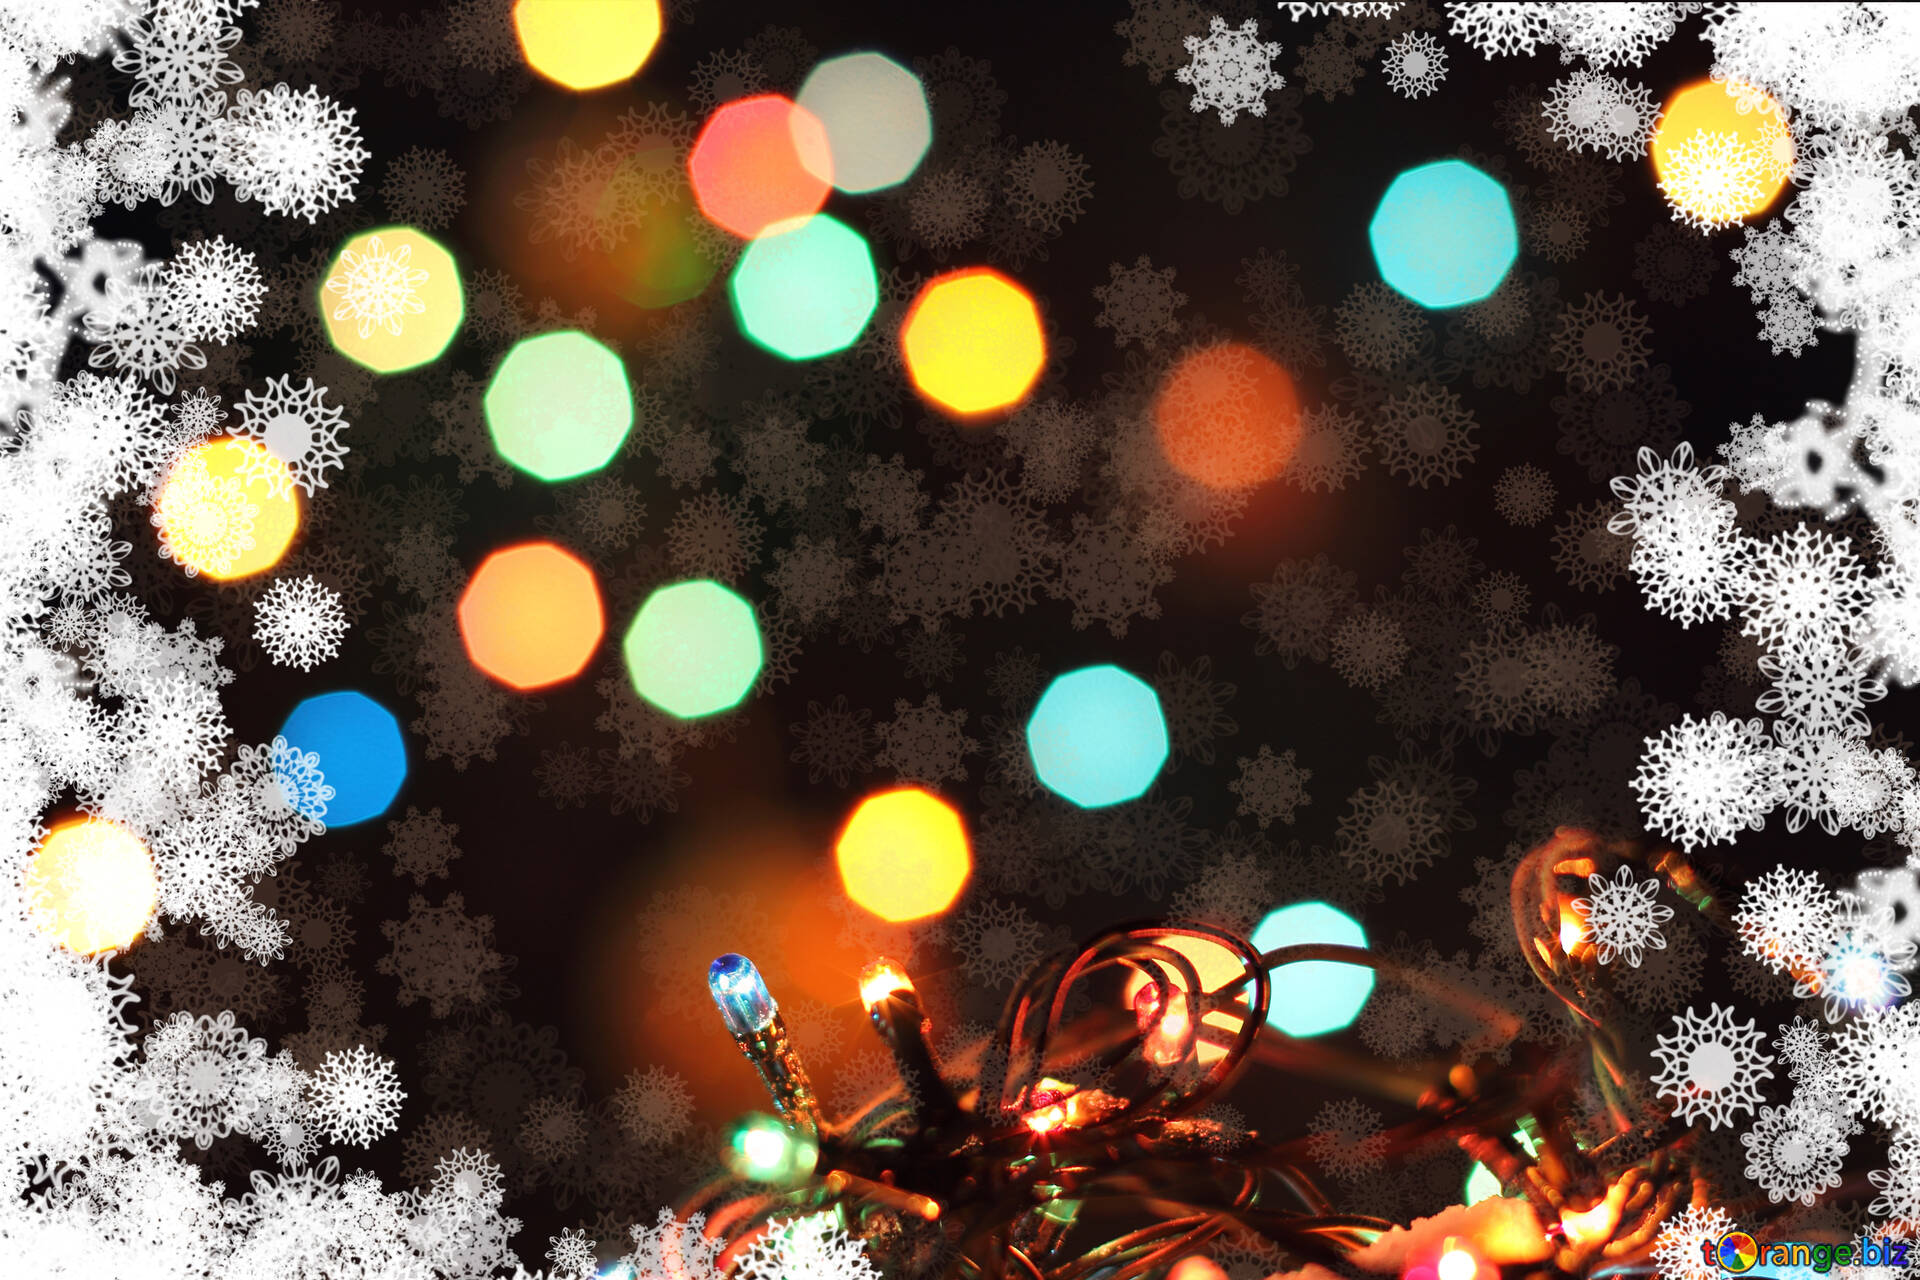 new year backgrounds christmas background christmas 40716 new year backgrounds christmas background christmas 40716